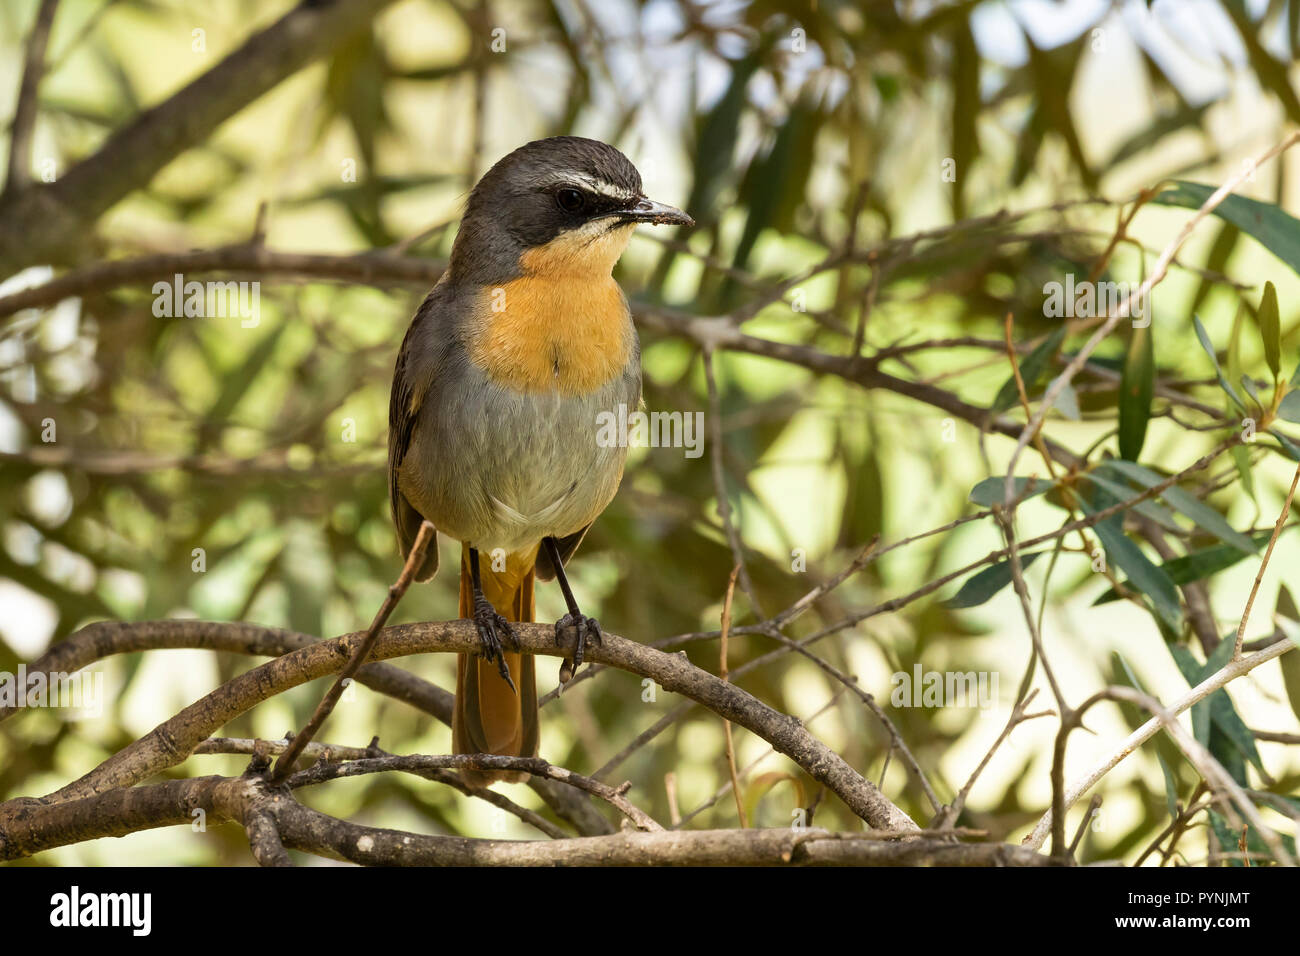 Frontal view single adult Cape Robin-chat Cassypha caffra Robertson South Africa perched in tree in suburban garden Robertson, Western Cape, S Africa - Stock Image